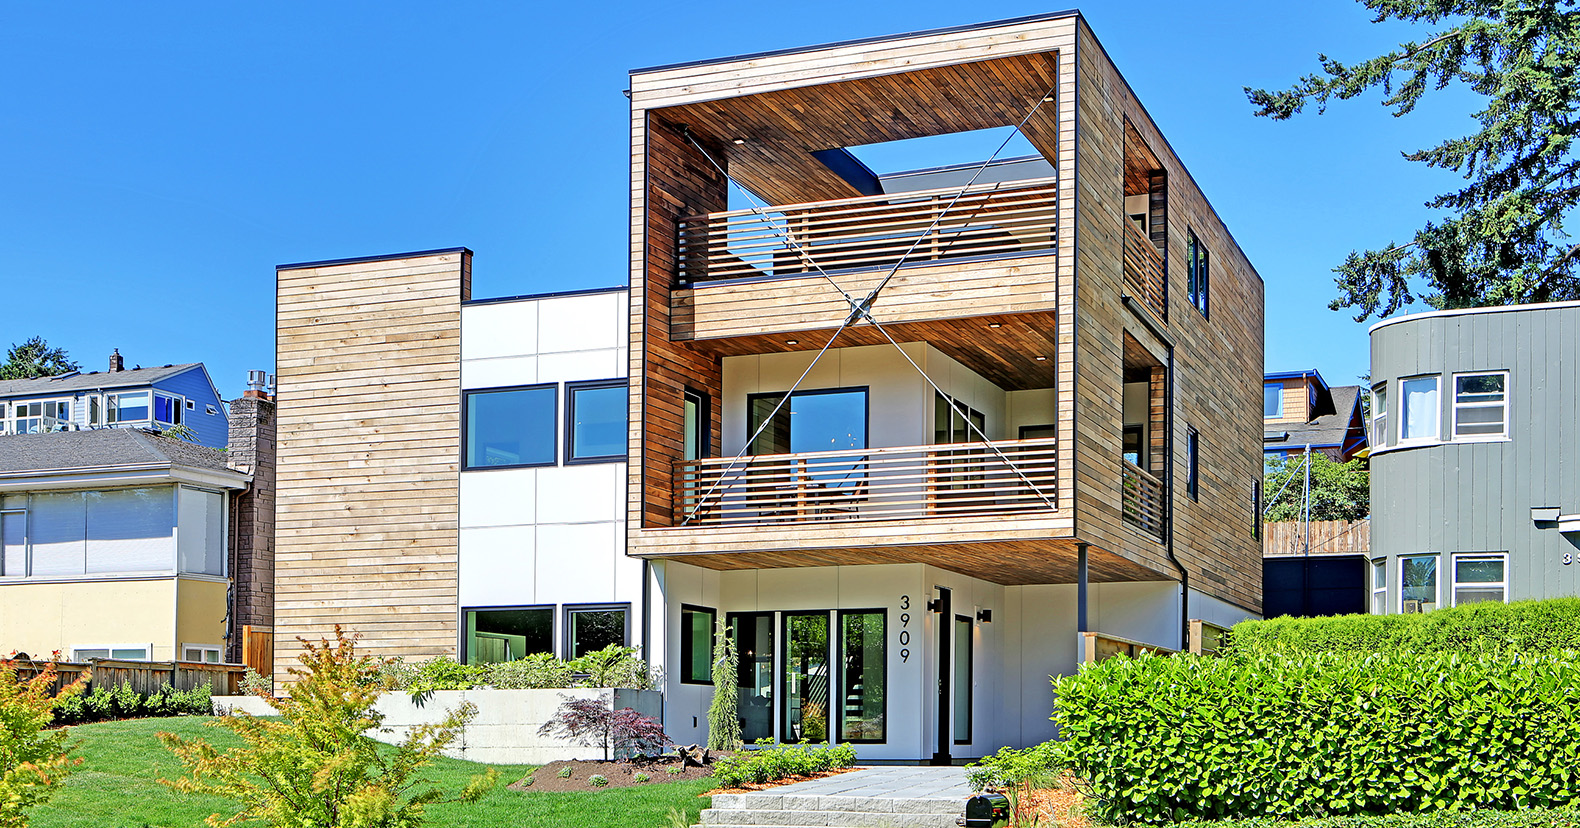 Net zero genesee park residence in seattle is built out of Built in seattle